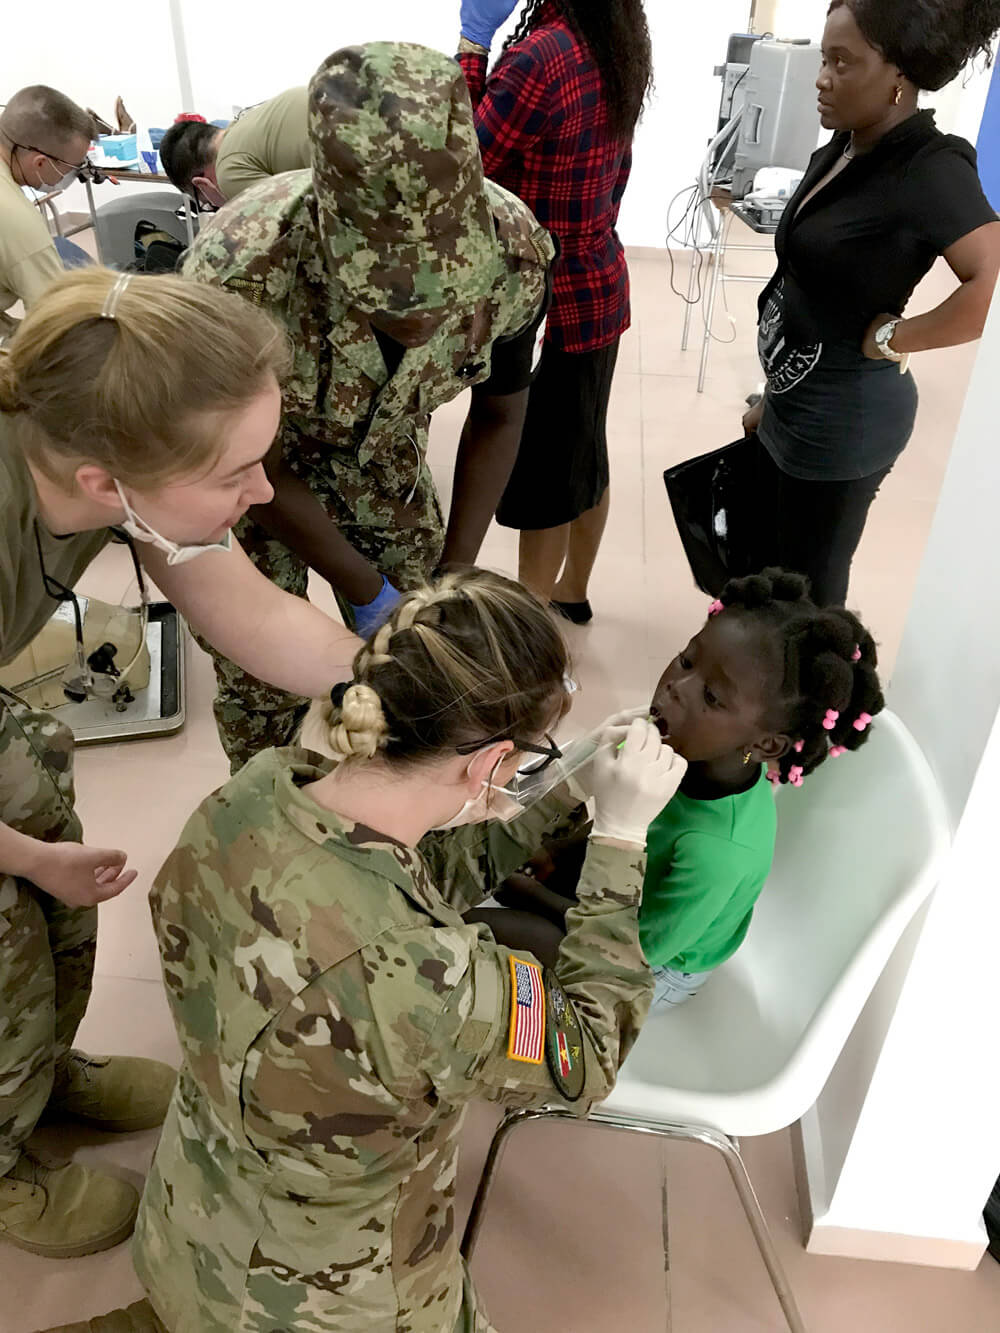 South Dakota Army National Guard's SPC Kirstin Gortmaker paints fluoride varnish on a young girl's teeth as part of a humanitarian services deployment to South Dakota's State Partner, Suriname, April 2019. South Dakota Army National Guard photo by SSG Samantha Wempe